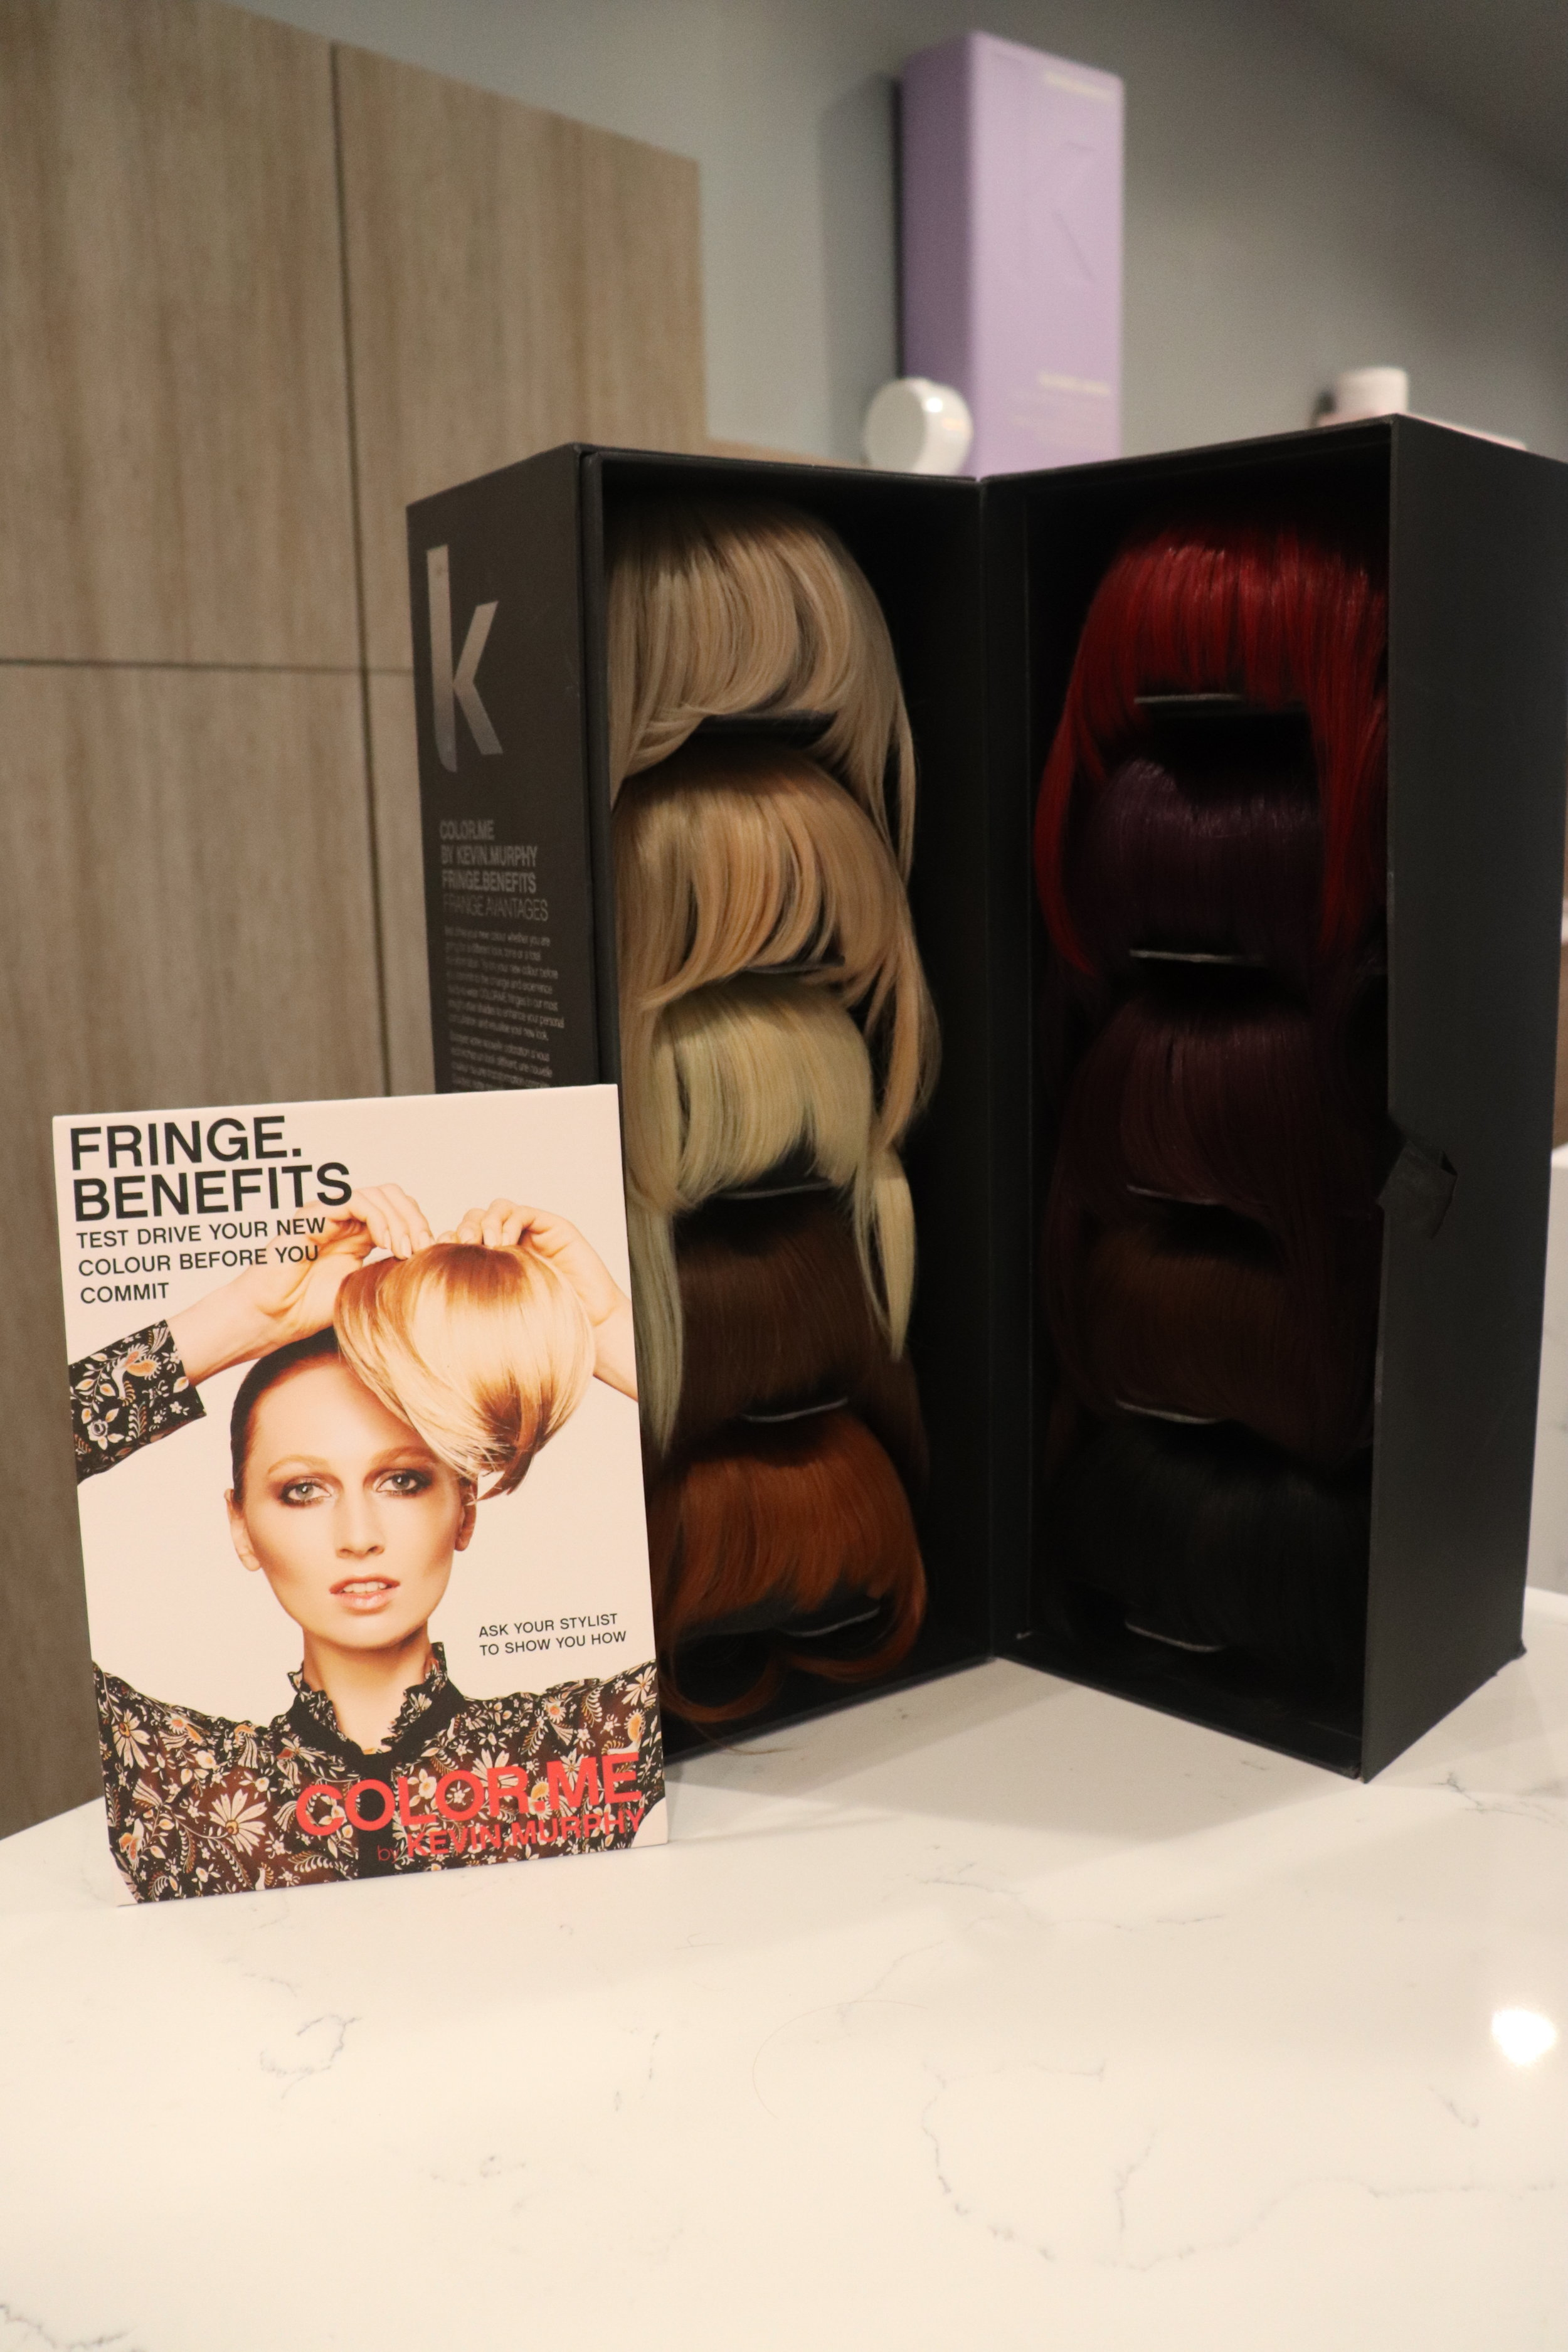 Fringe Benefits helps you visualize any major color changes